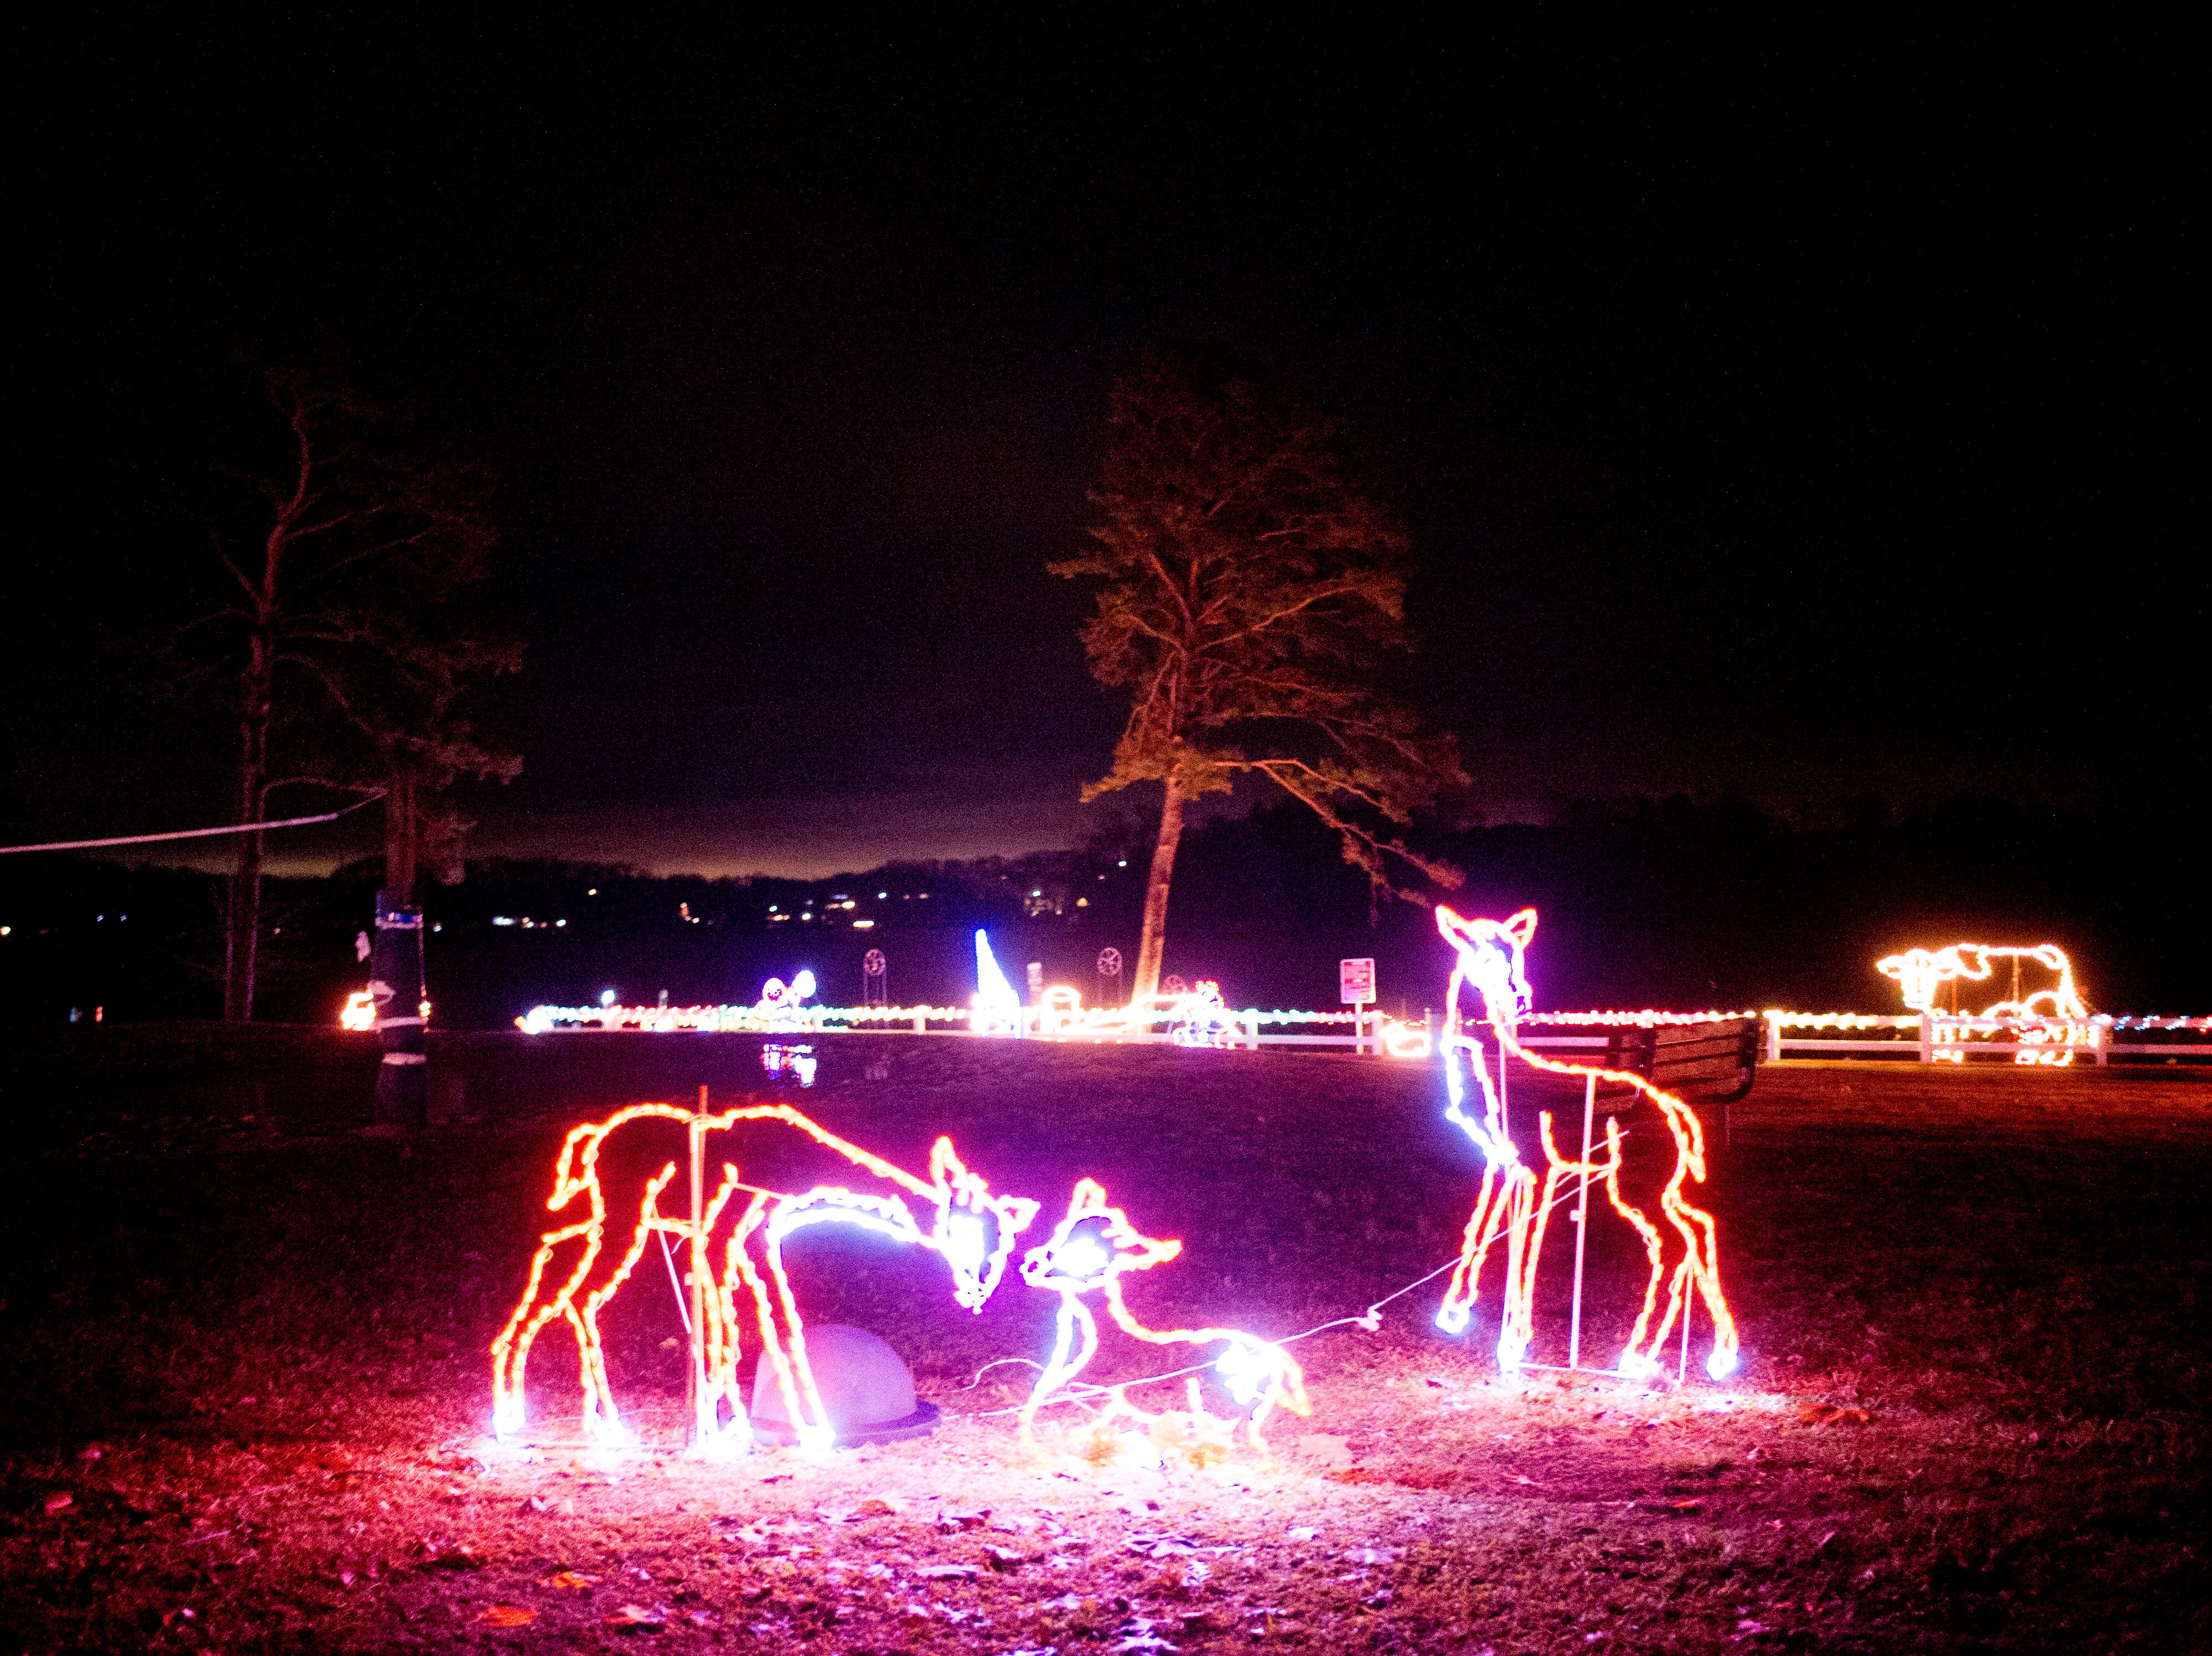 Deer lights at Knox CountyÕs 20th annual Holiday Festival of Lights kick off at The Cove at Concord Park in Farragut, Tennessee on Friday, December 21, 2018. The family-friendly event is free and will run through Dec. 29 from 6 to 9 p.m., excluding Christmas Eve and Christmas Day.